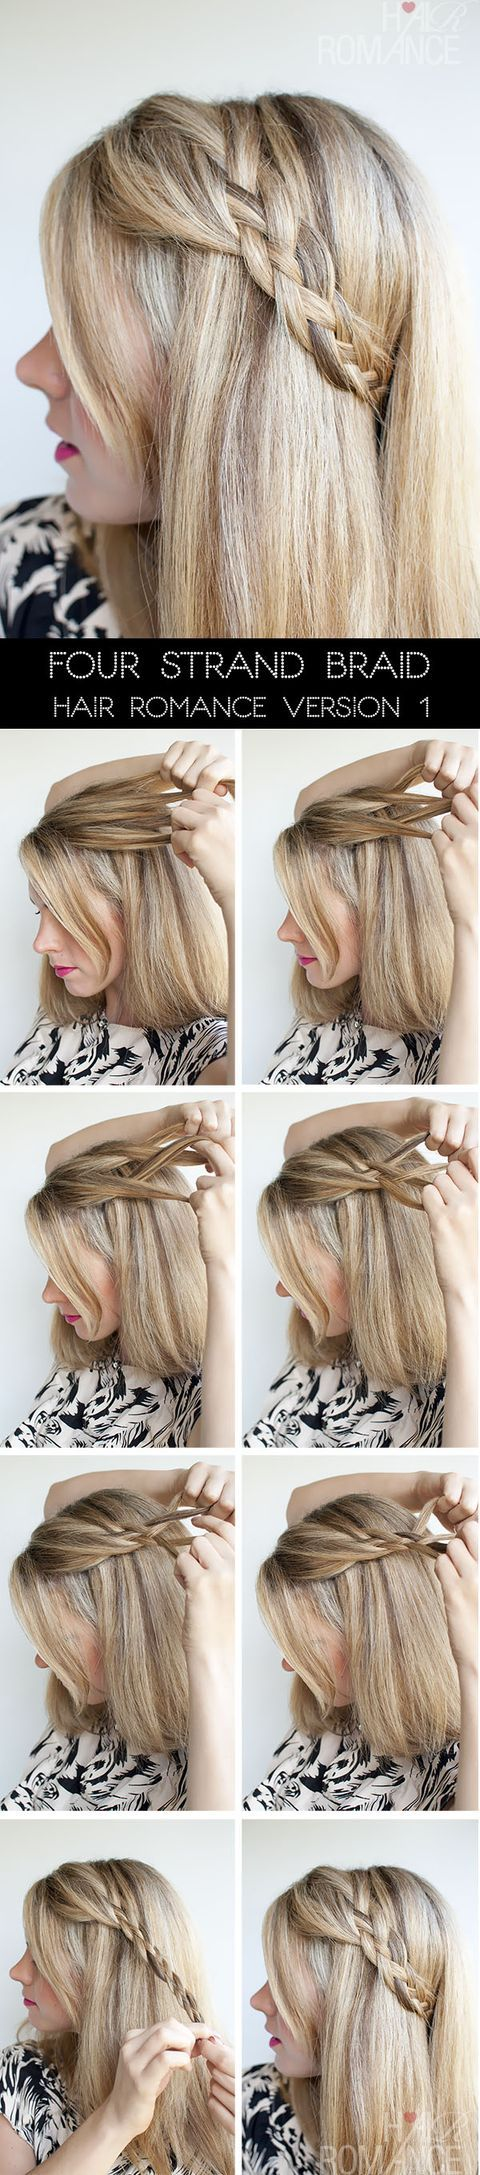 17 Best images about Hair on Pinterest Bobs Korean